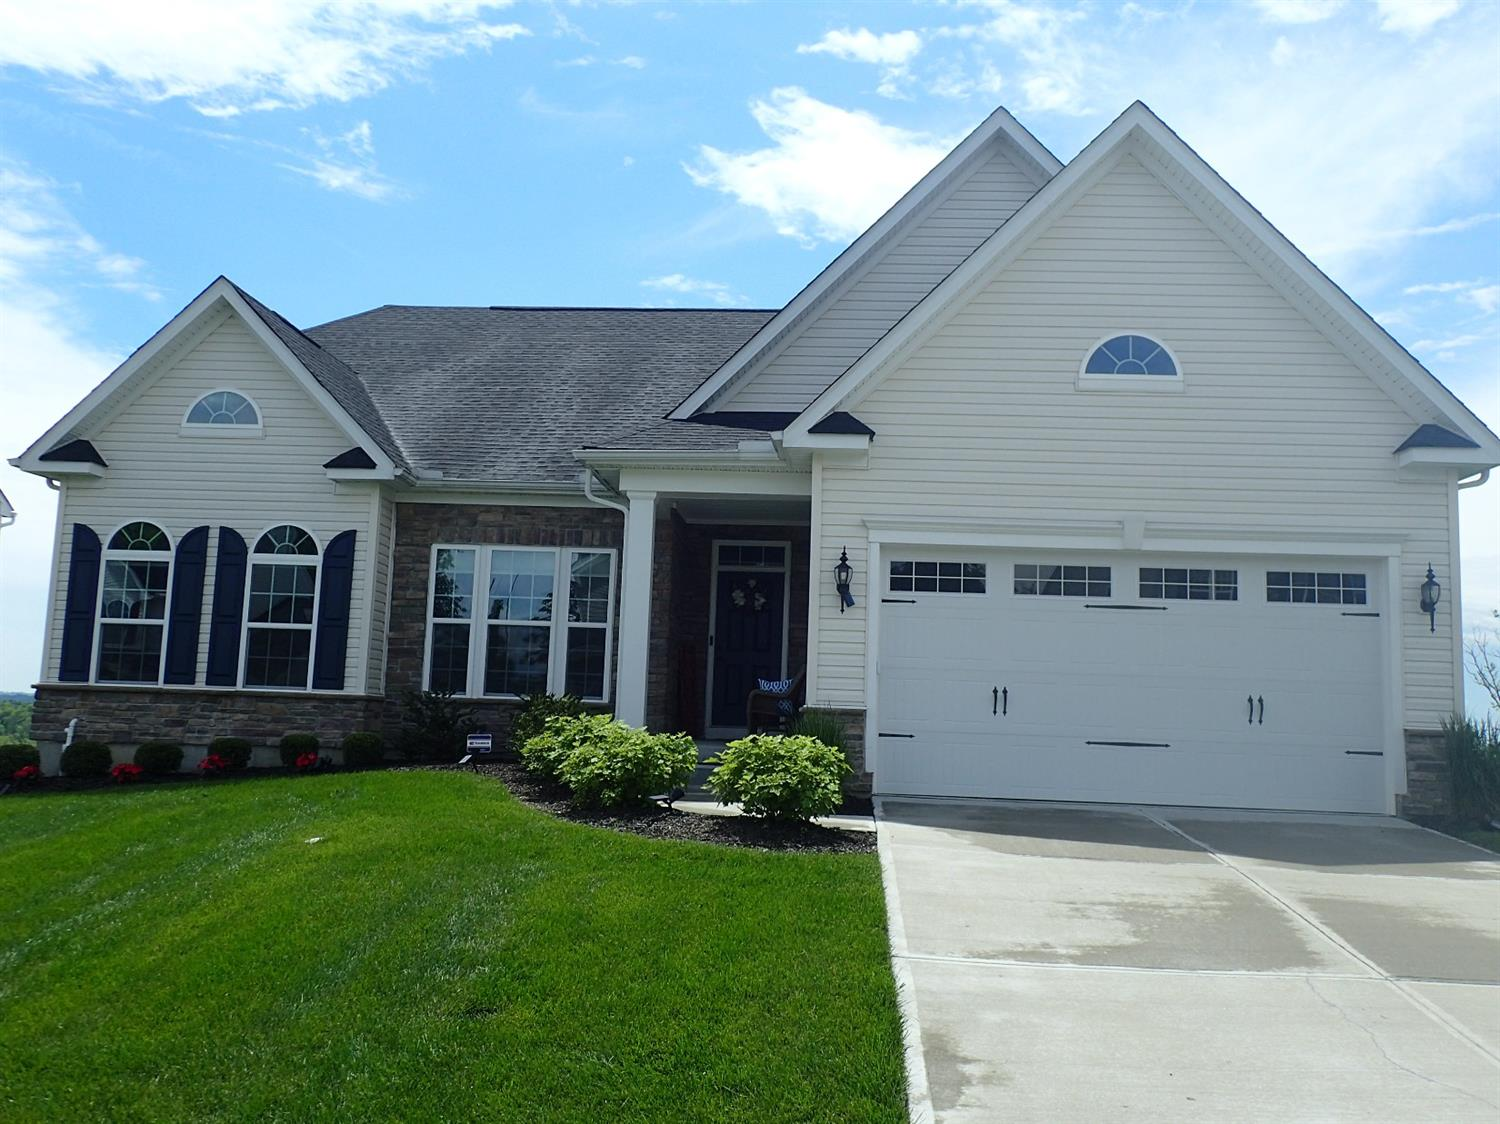 Property for sale at 8577 Forest Valley Drive, Colerain Twp,  Ohio 45247